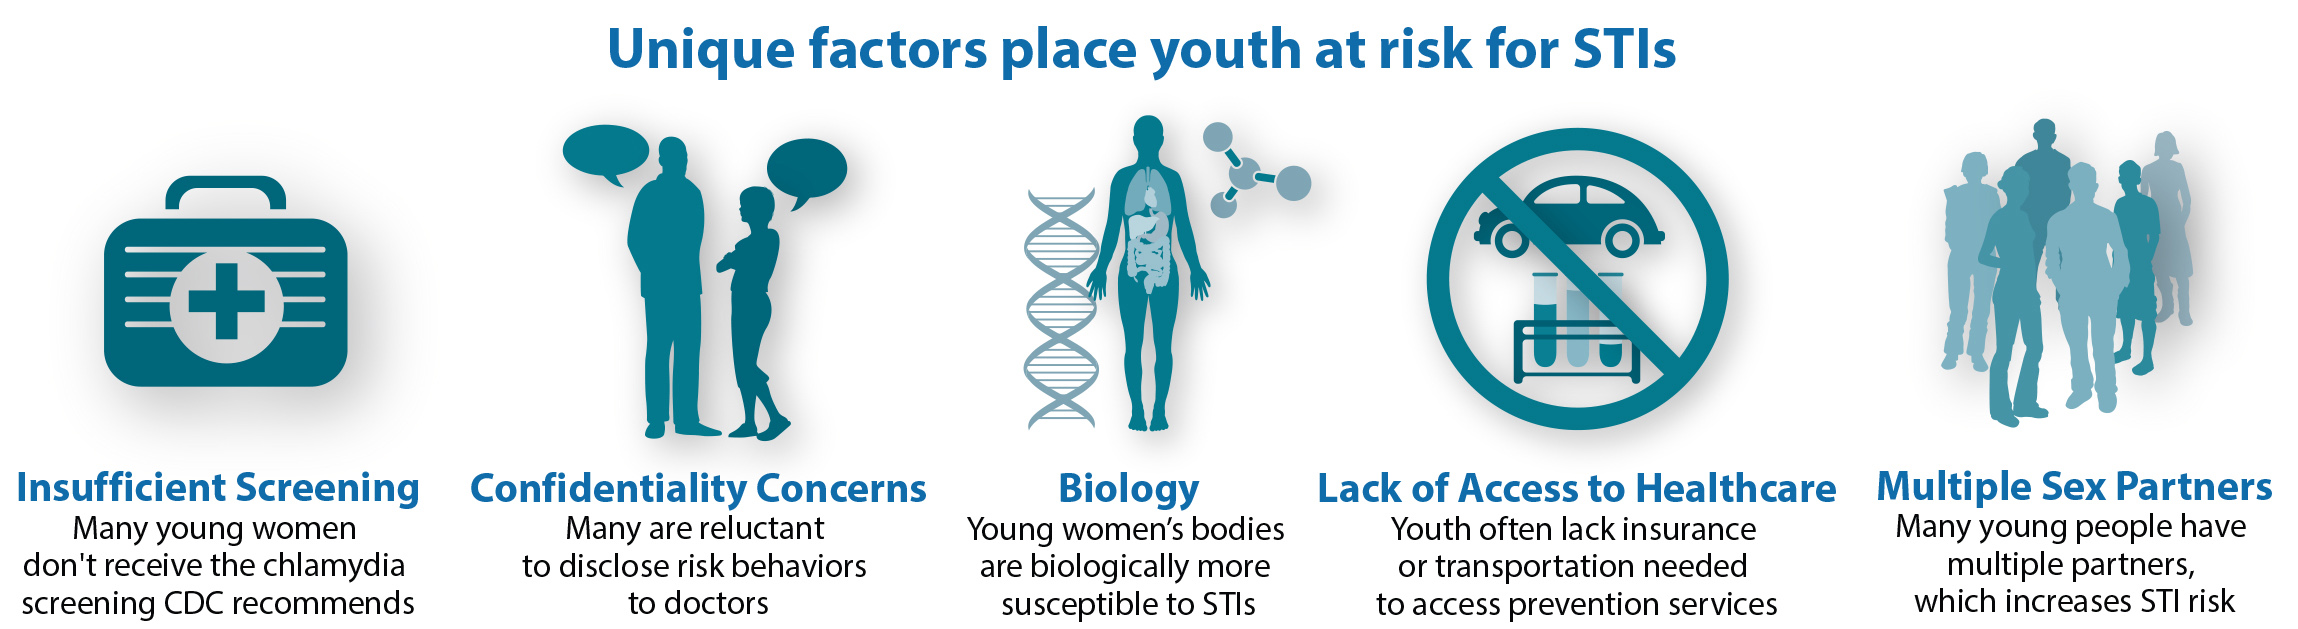 A range of unique factors place youth at risk for infection. Many young women don't receive the chlamydia screening CDC recommends. Many youth are reluctant to disclose risk behaviors to doctors. Young women's bodies are biologically more susceptible to sexually transmitted infections. Youth often lack insurance or transportation needed to access prevention services. And many young people have multiple partners which increases STI risk.